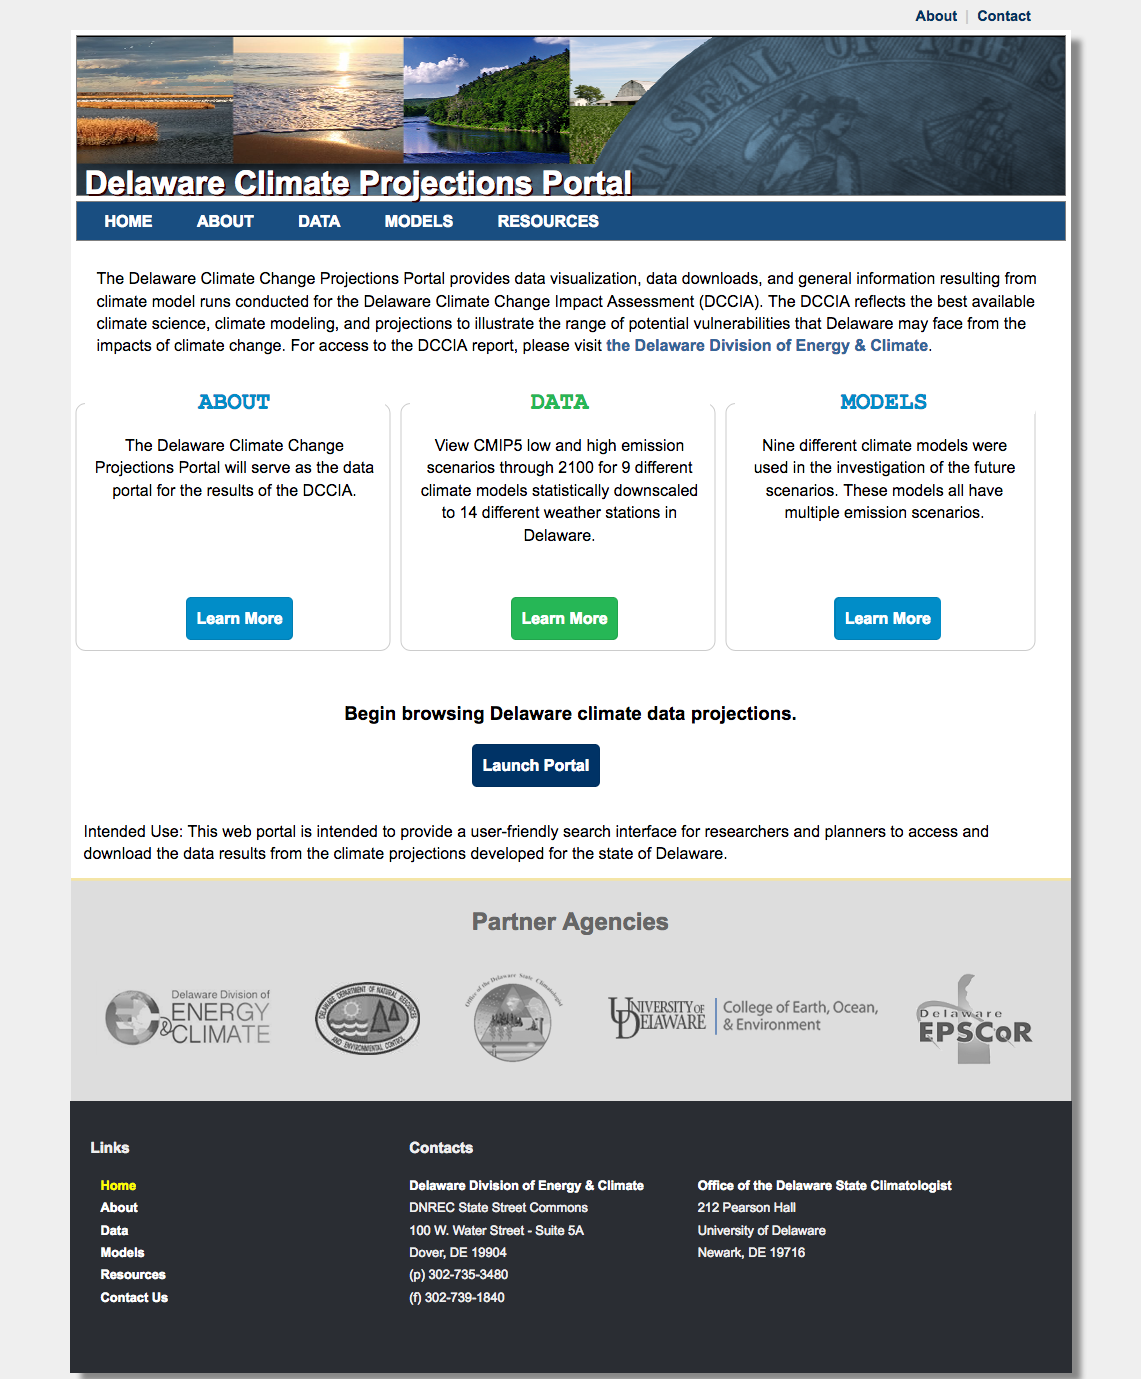 Delaware Climate Projection Portal